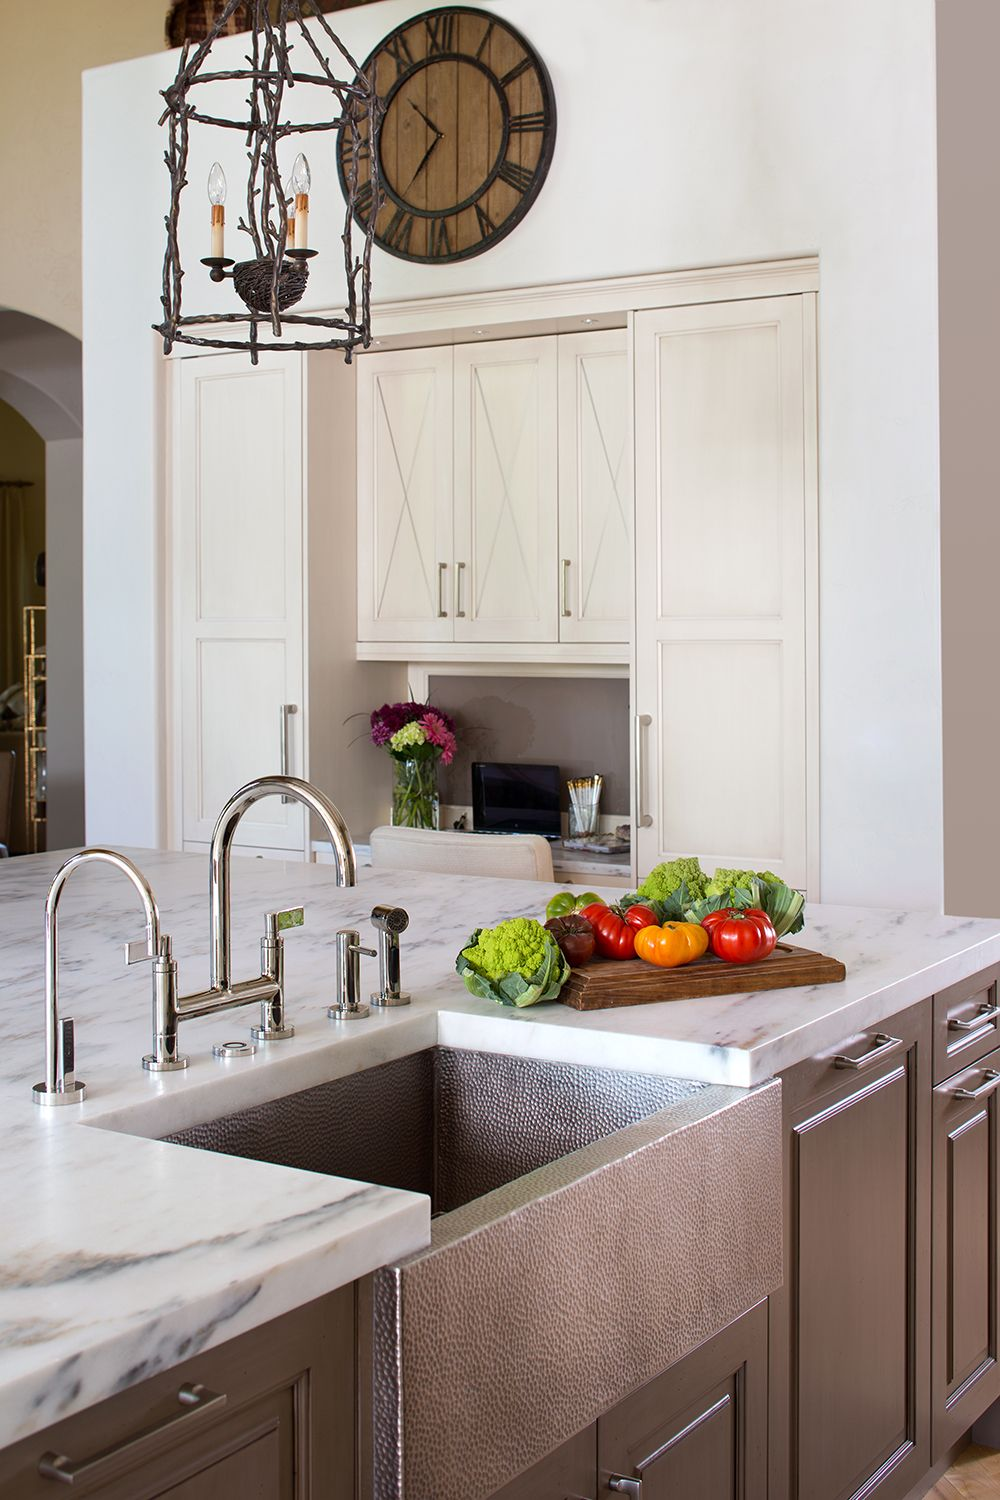 Patti Naumann William Ohs Our Talented Designers Can Help You Create A Kitchen Of Your Dreams Tailored To Yo Elegant Kitchens Custom Kitchen Kitchen Design